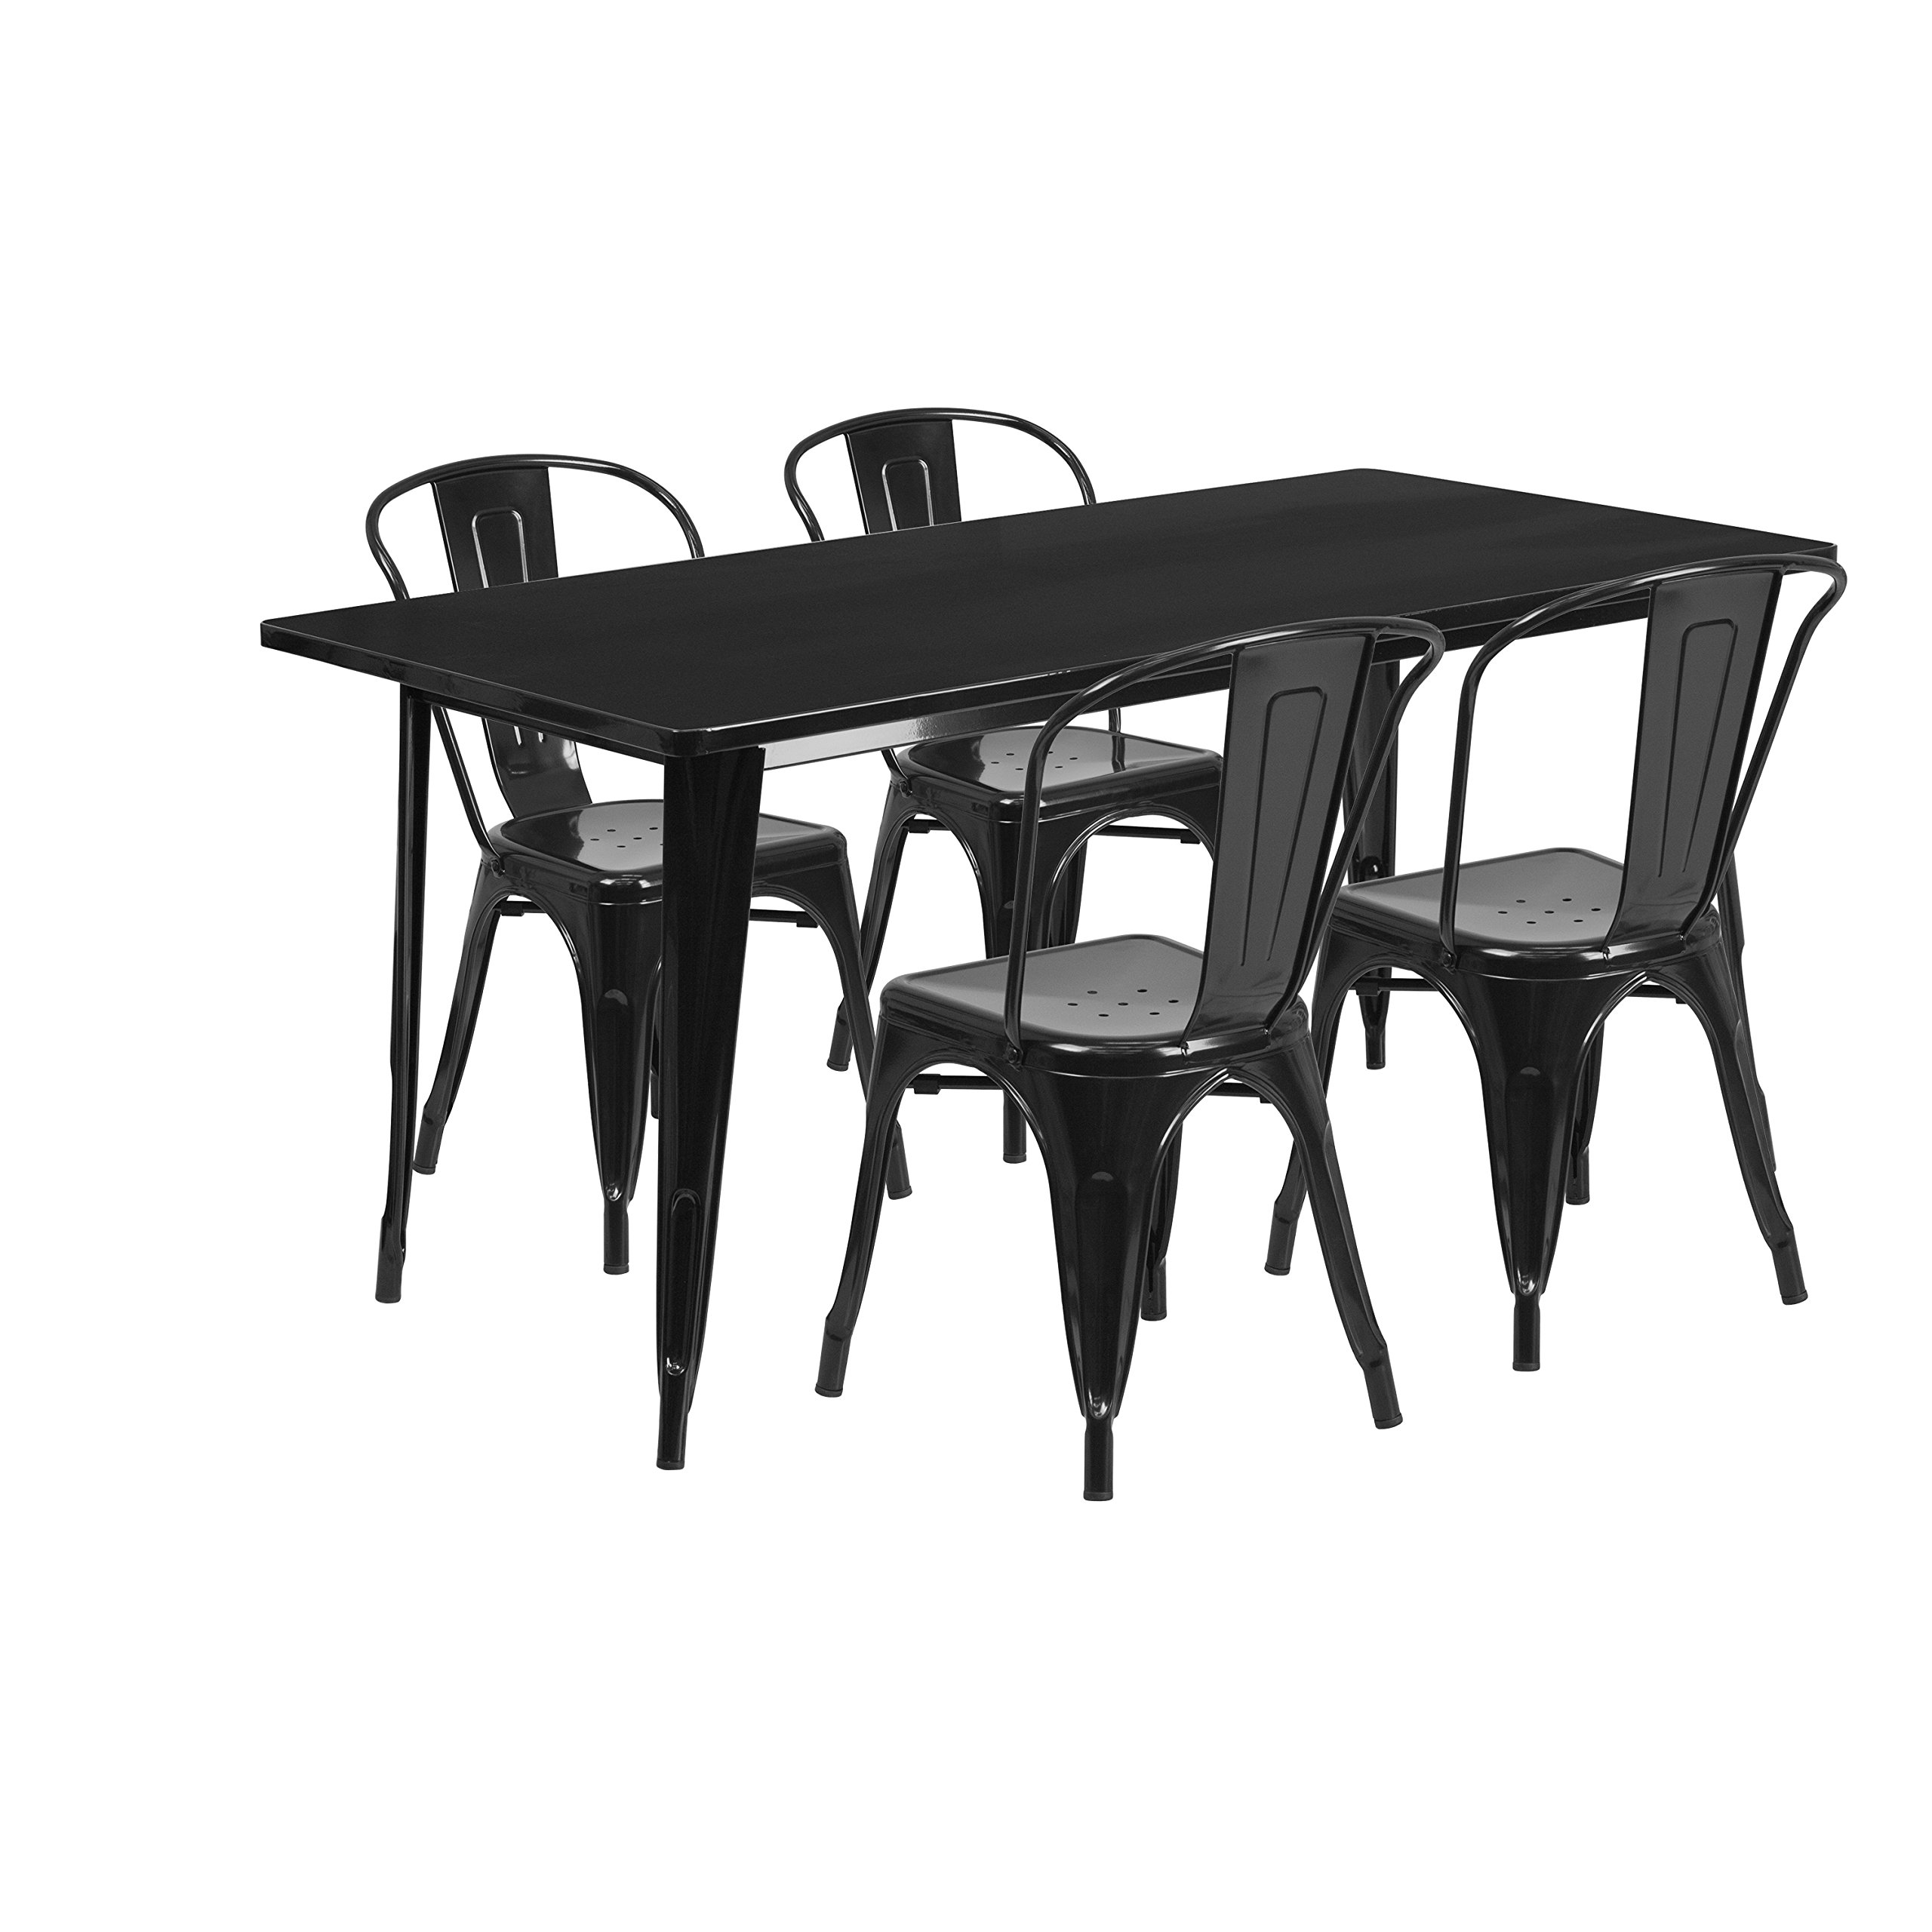 Flash Furniture 31.5'' x 63'' Rectangular Black Metal Indoor-Outdoor Table Set with 4 Stack Chairs by Flash Furniture